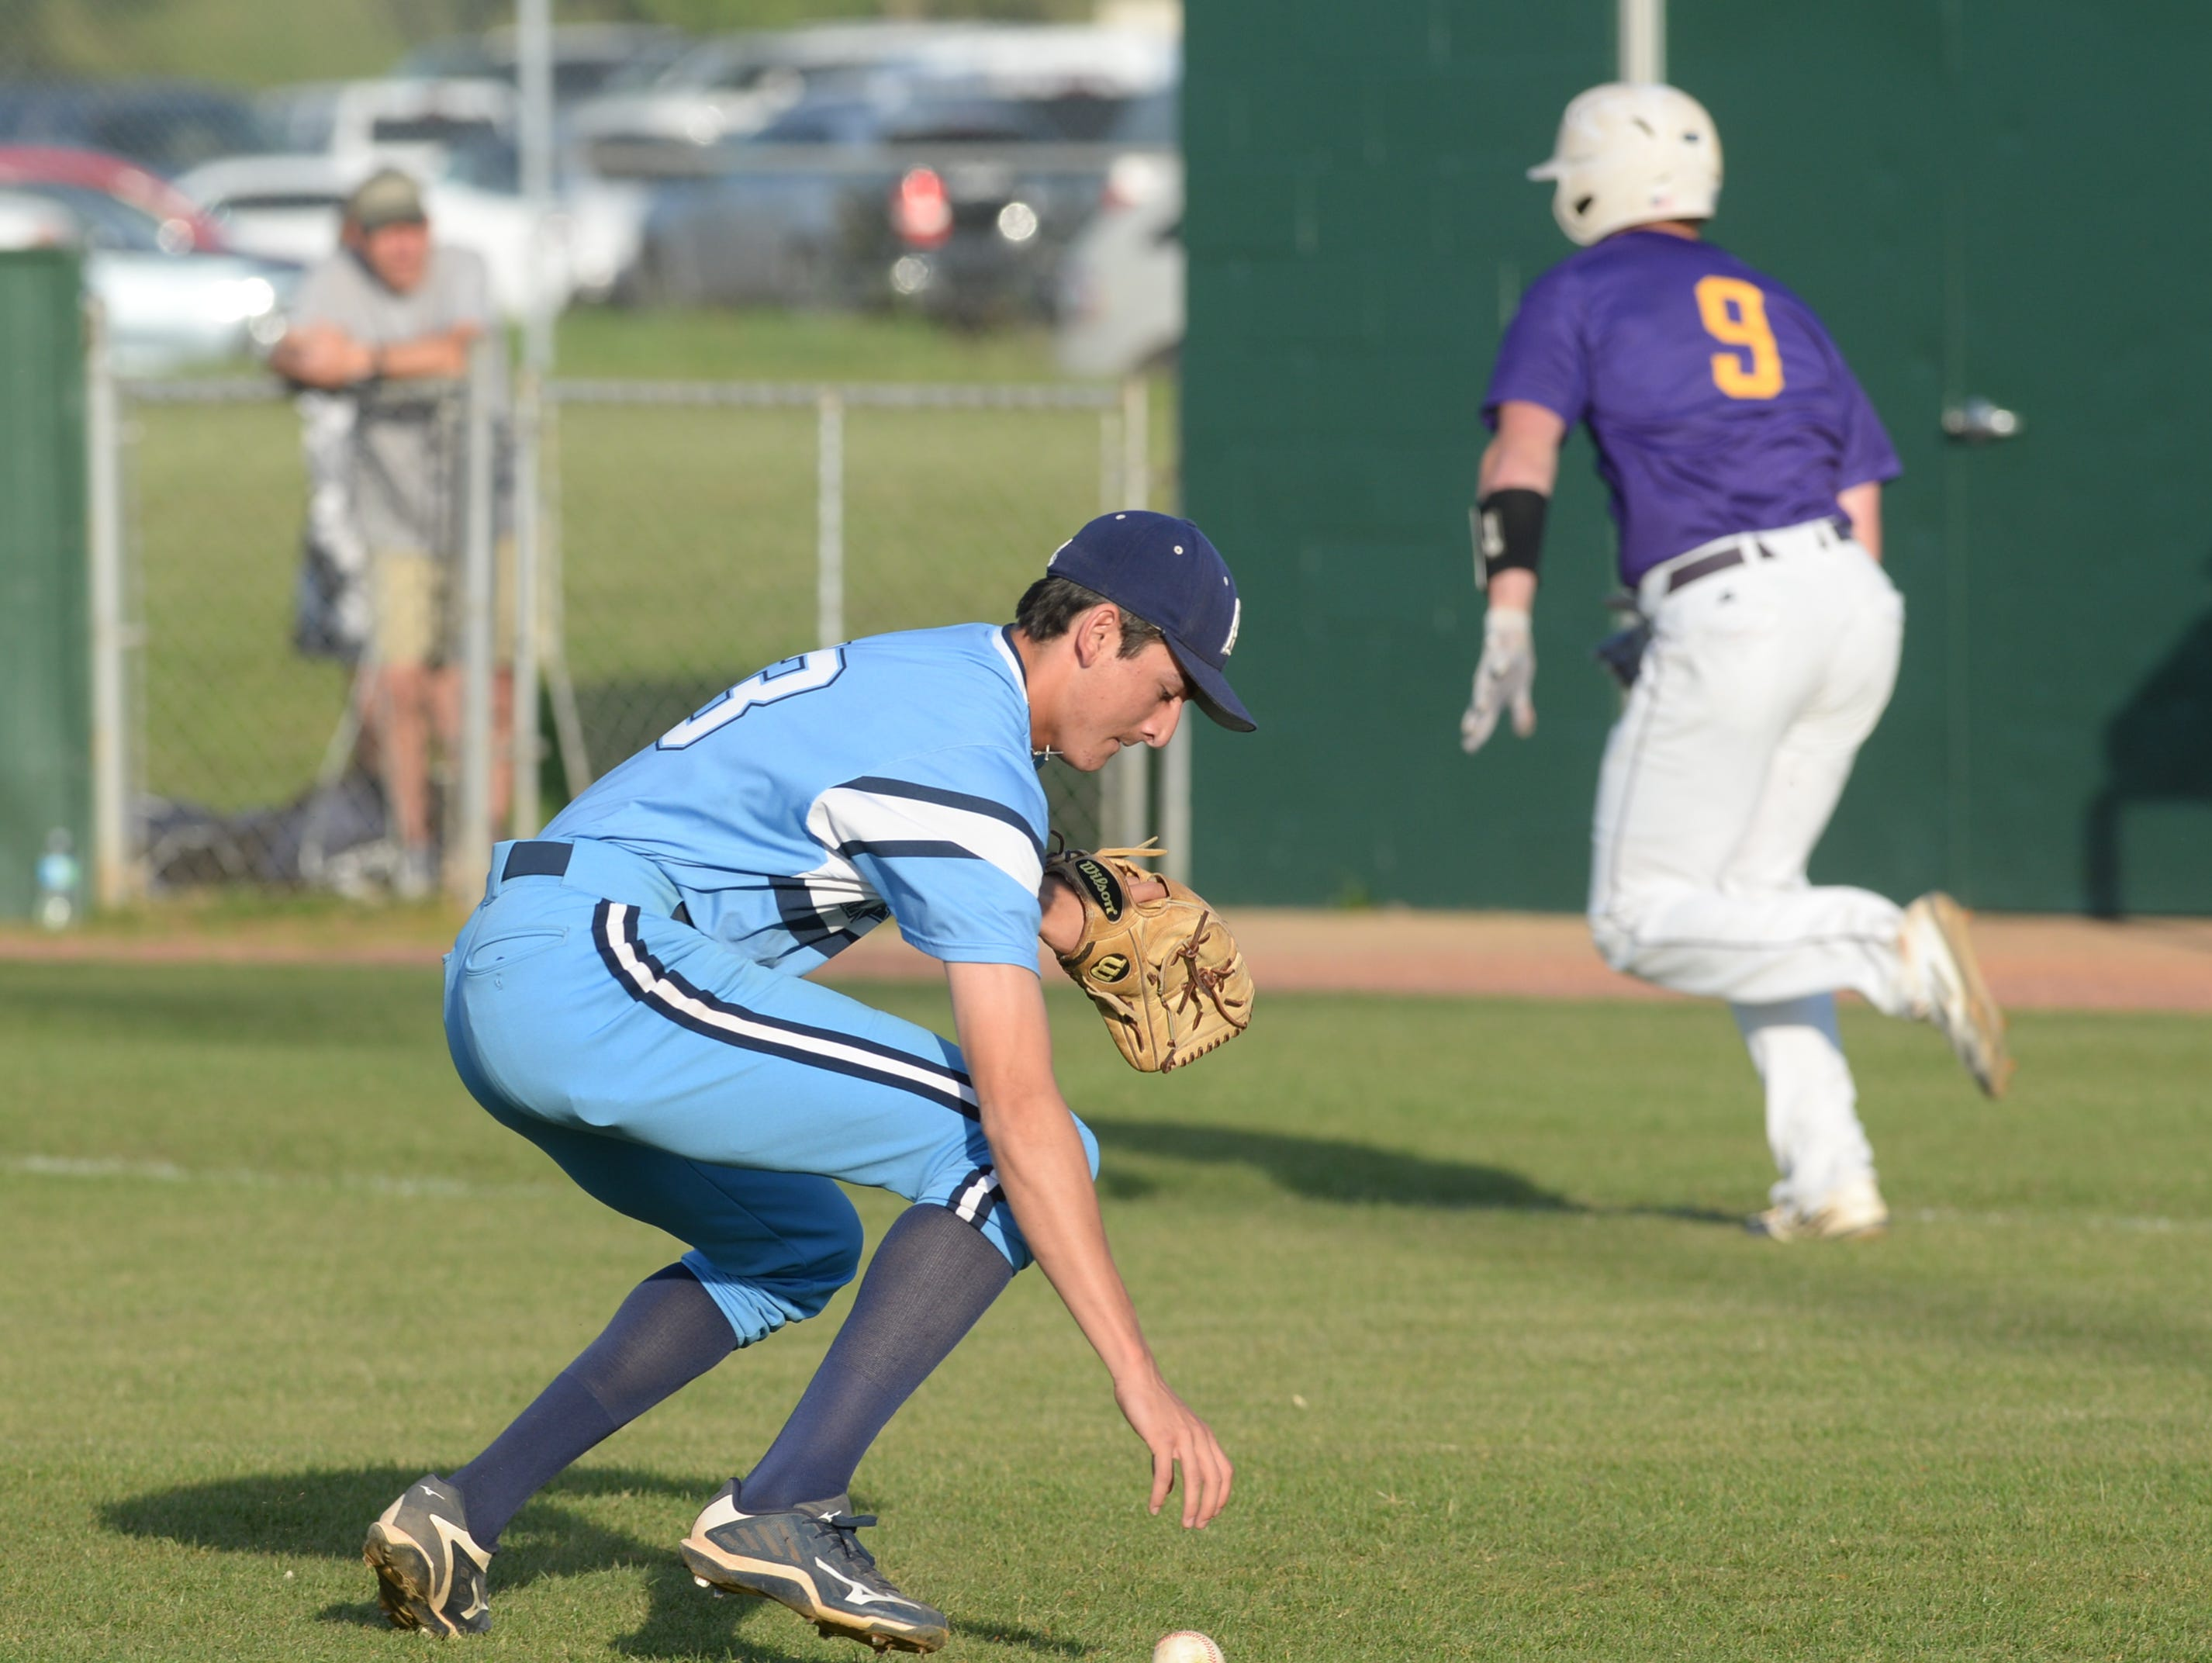 Airline pitcher Cameron Parikh can't get a handle on the ball as Steele Netterville of Byrd sprints to first.